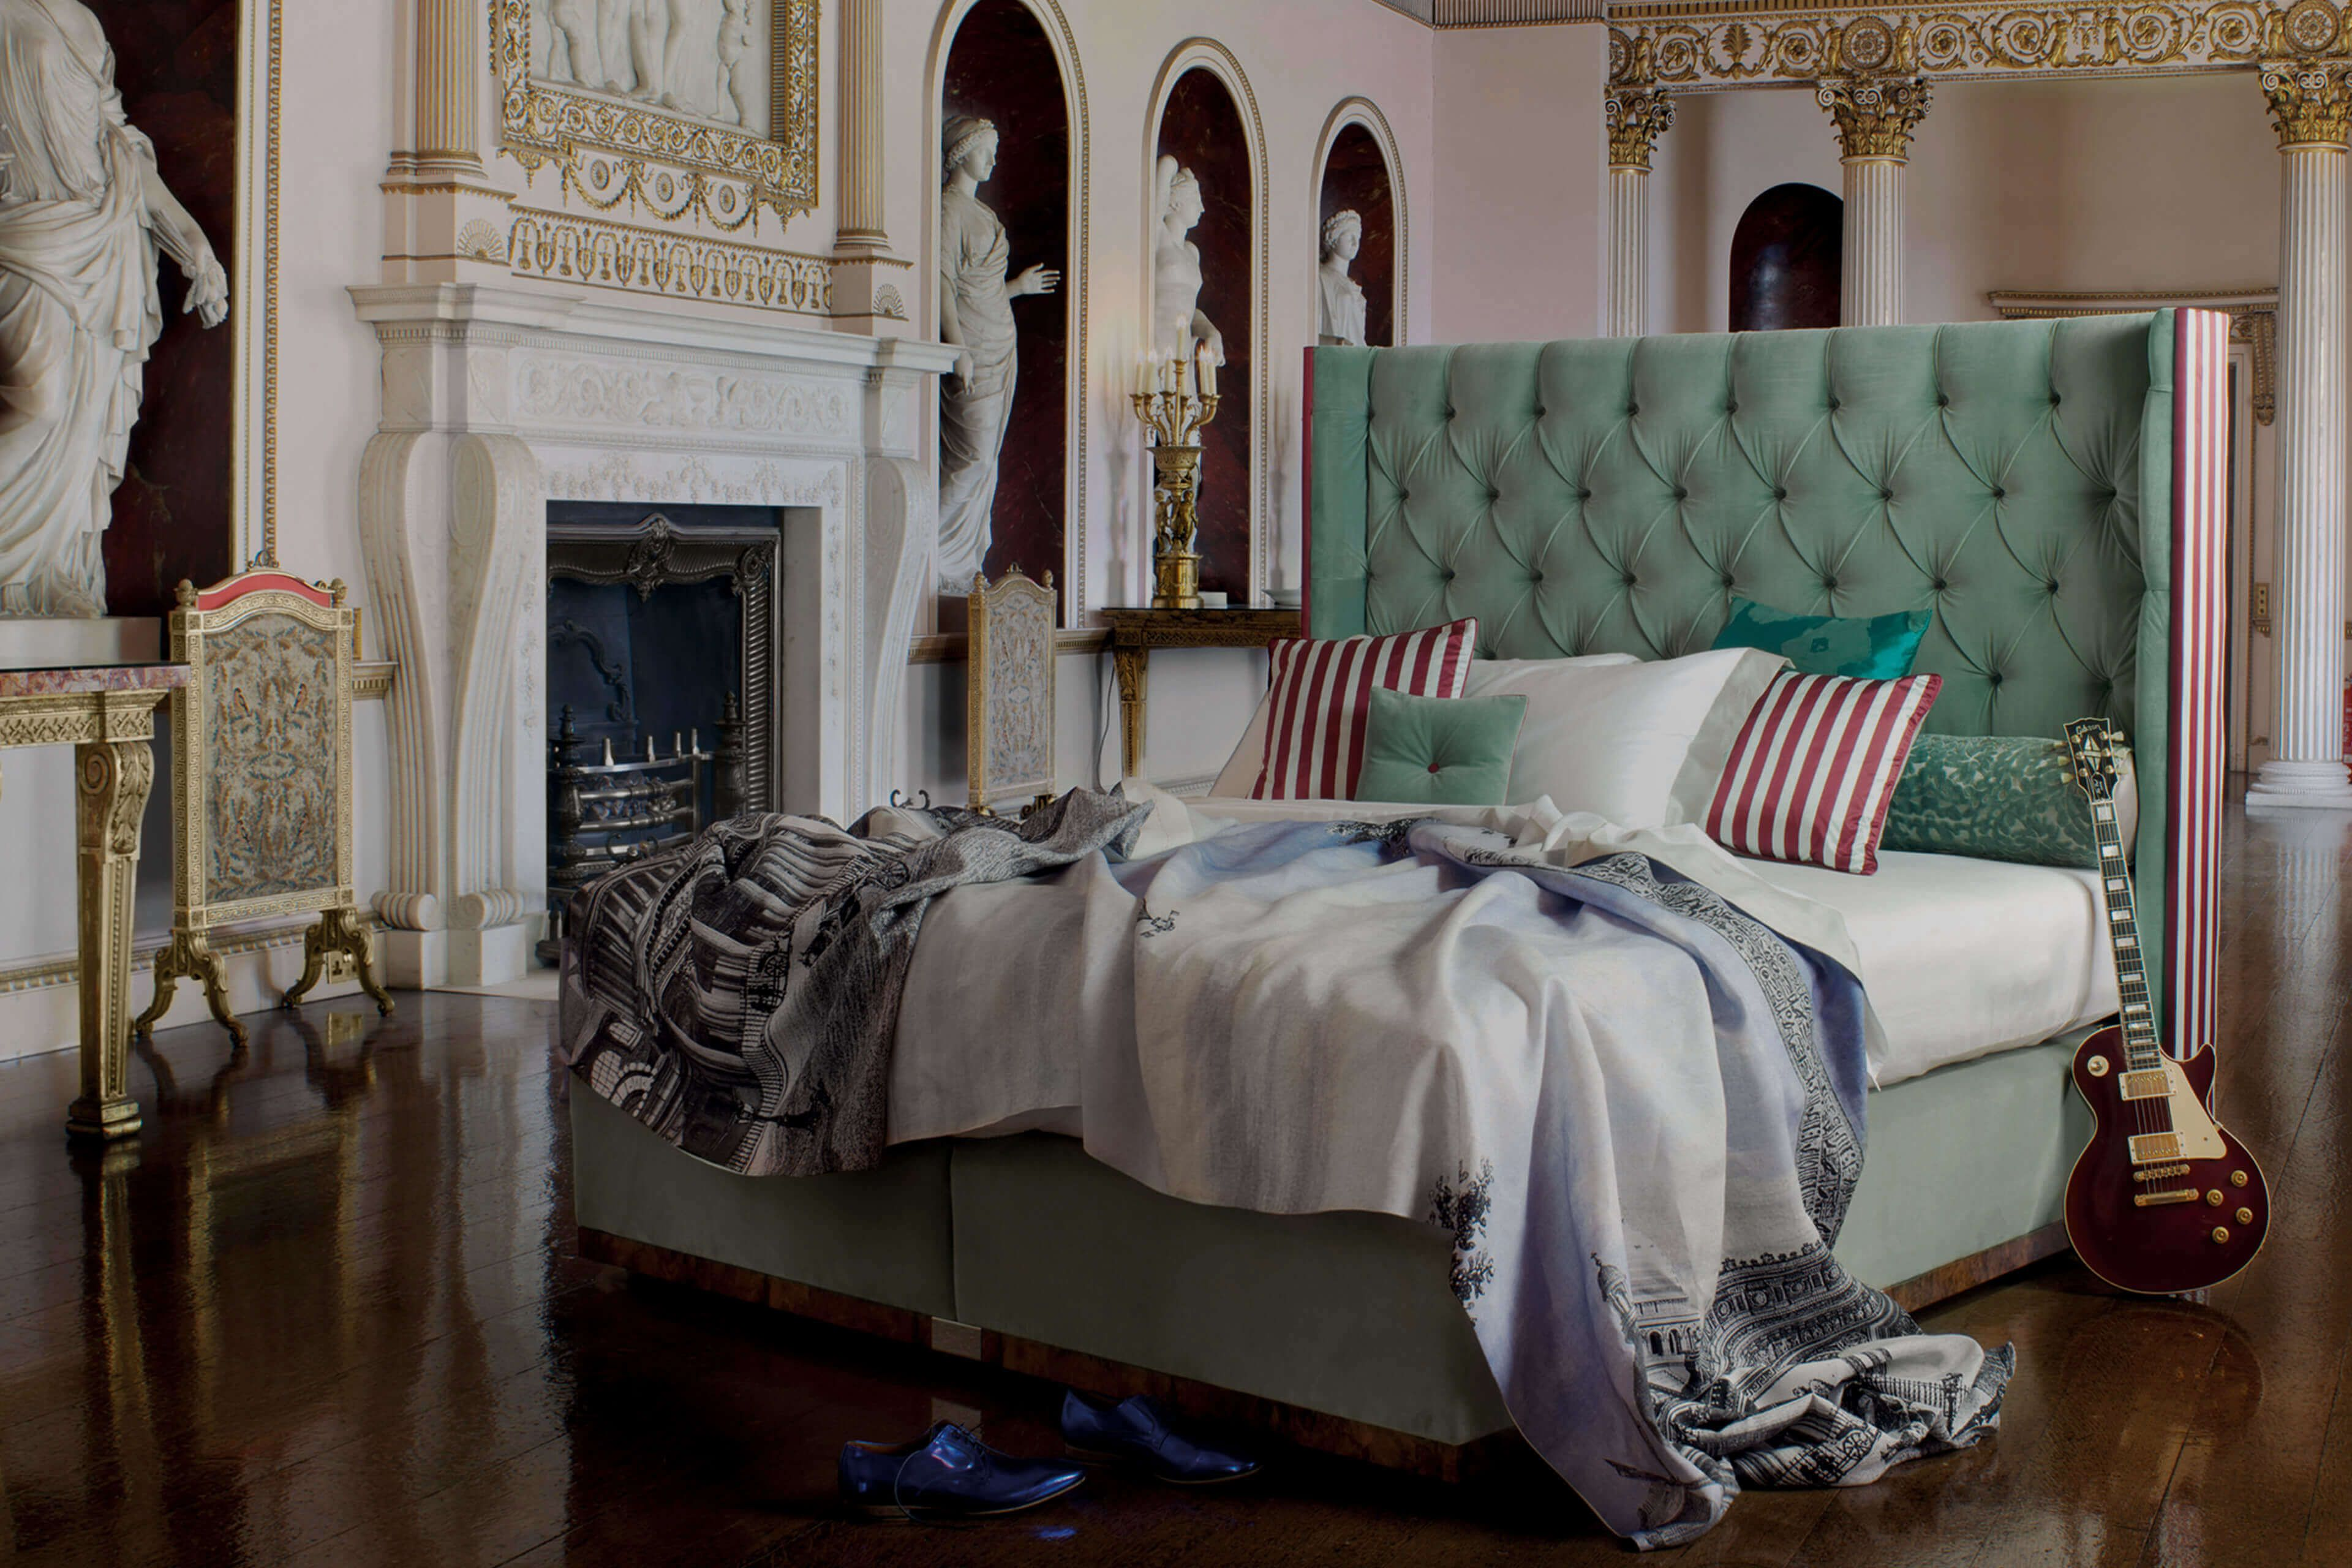 Savoir No 1 Bed The Ultimate Luxury Bespoke Bed Savoir Beds